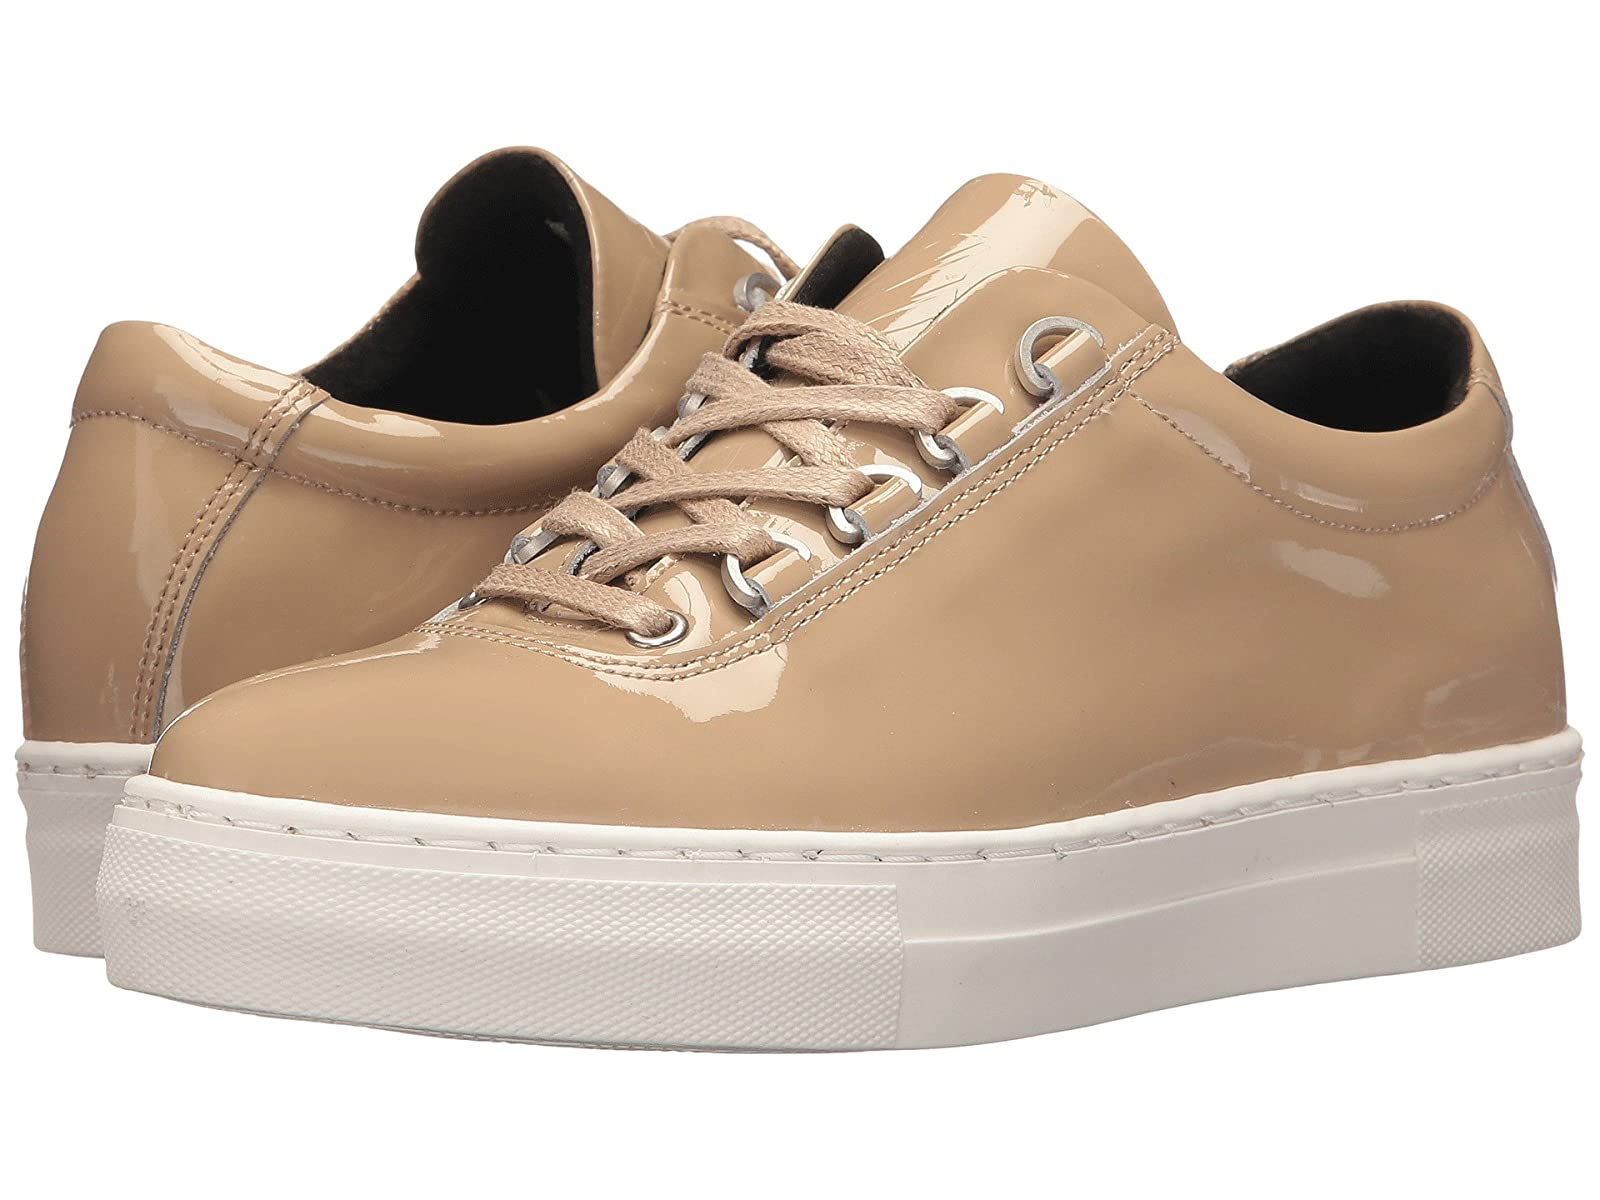 K-Swiss Classico Belleza PCheap and distinctive eye-catching shoes